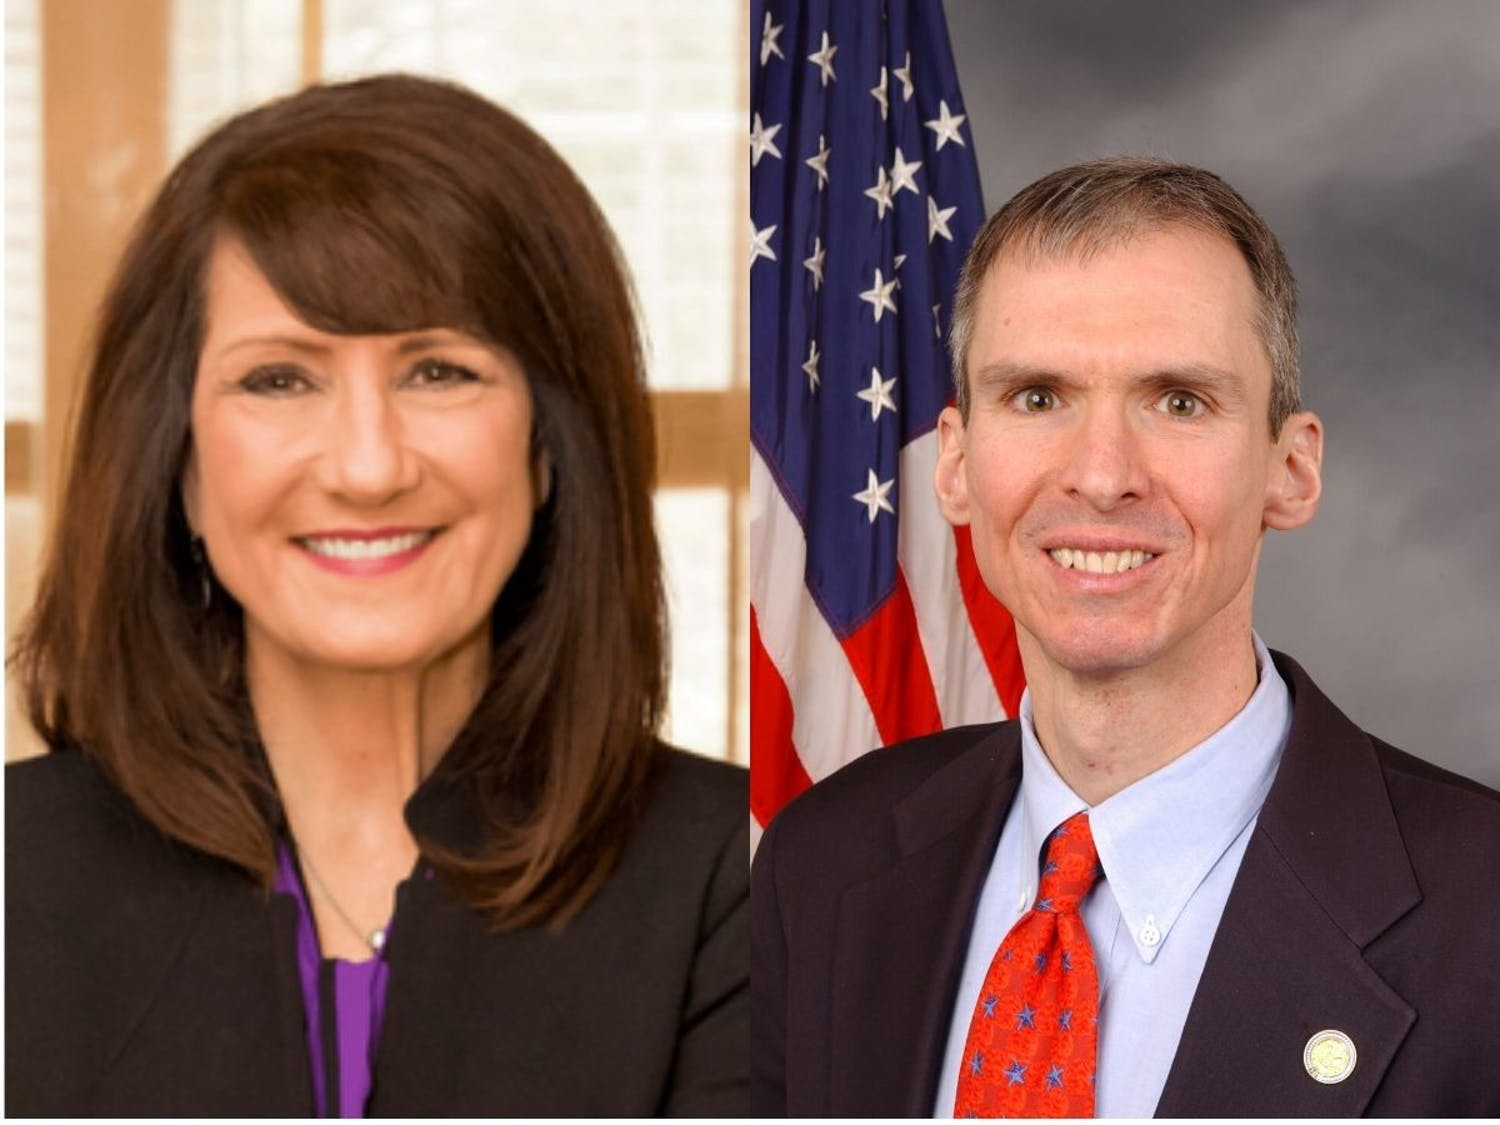 Marie Newman, left, defeated Dan Lipinski, right.